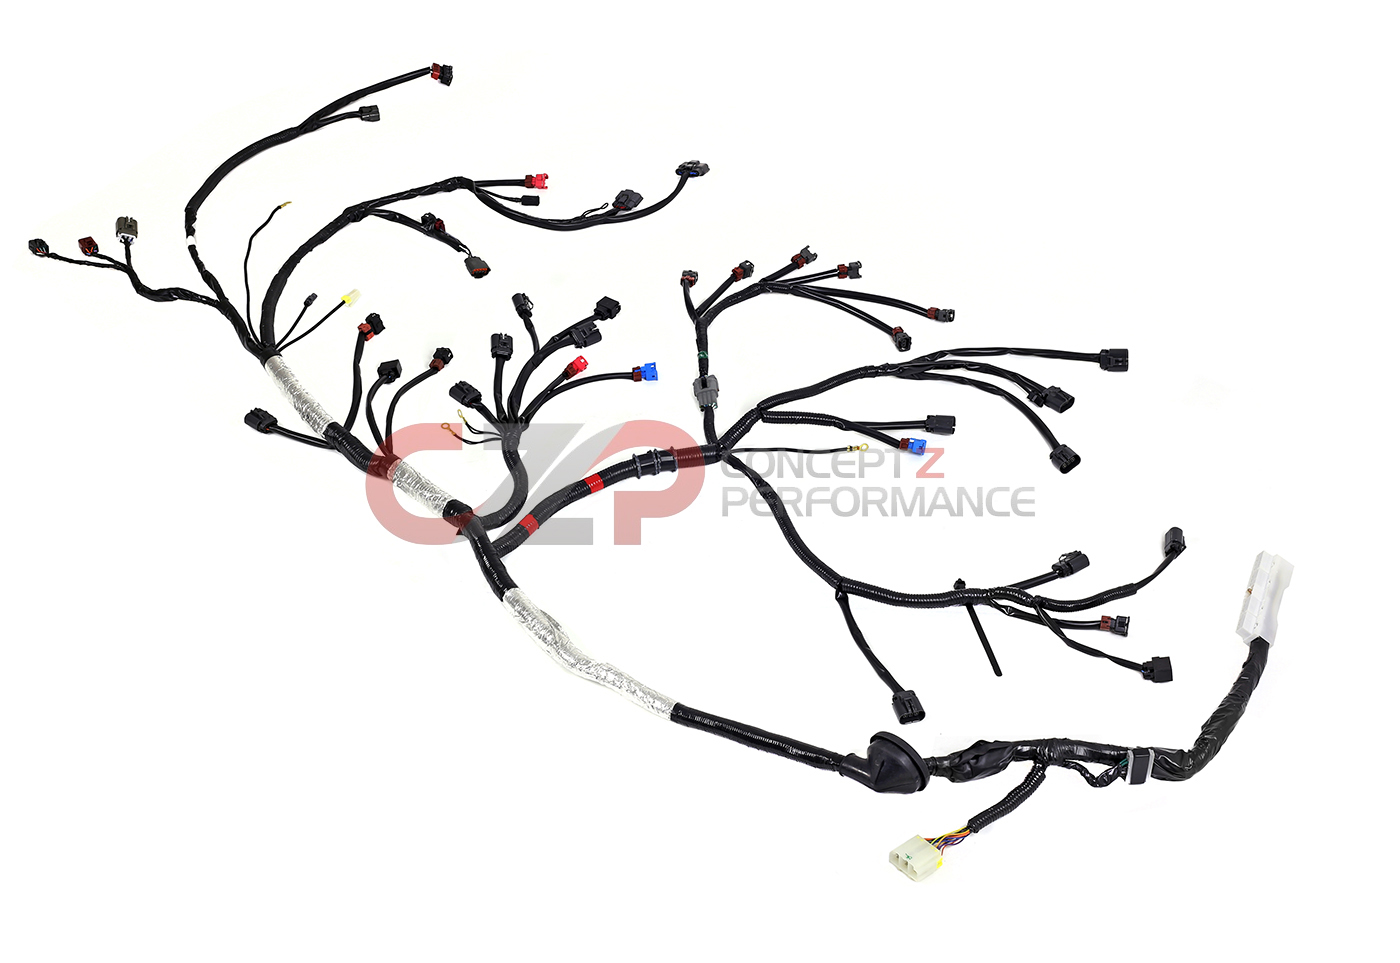 wiring specialties wrs z32rhd main efi engine wiring harness rh conceptzperformance com